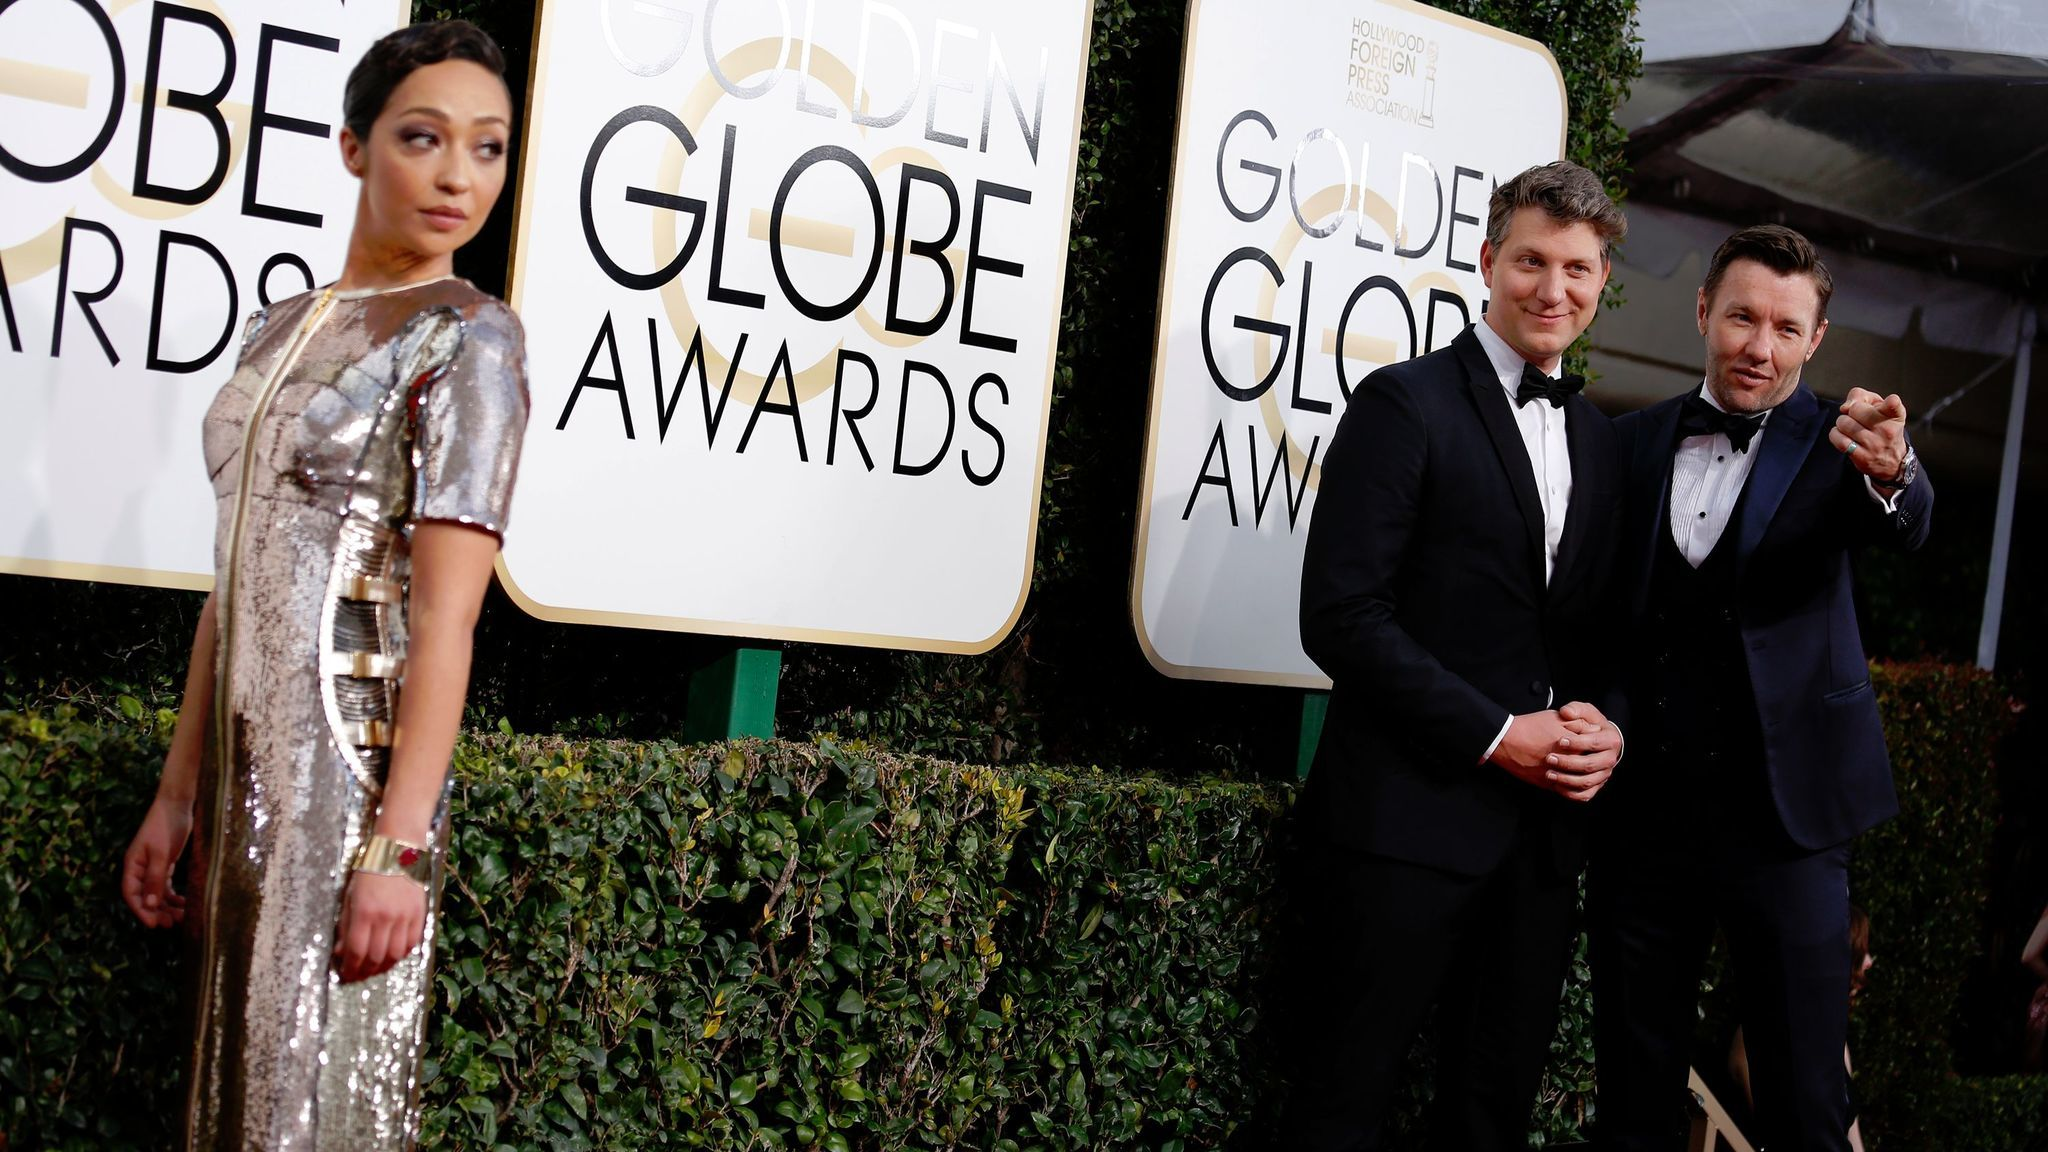 At the Golden Globes, Negga's shimmering, custom-made Louis Vuitton gown is stitched along the torso to give a subtle suggestion of armor.